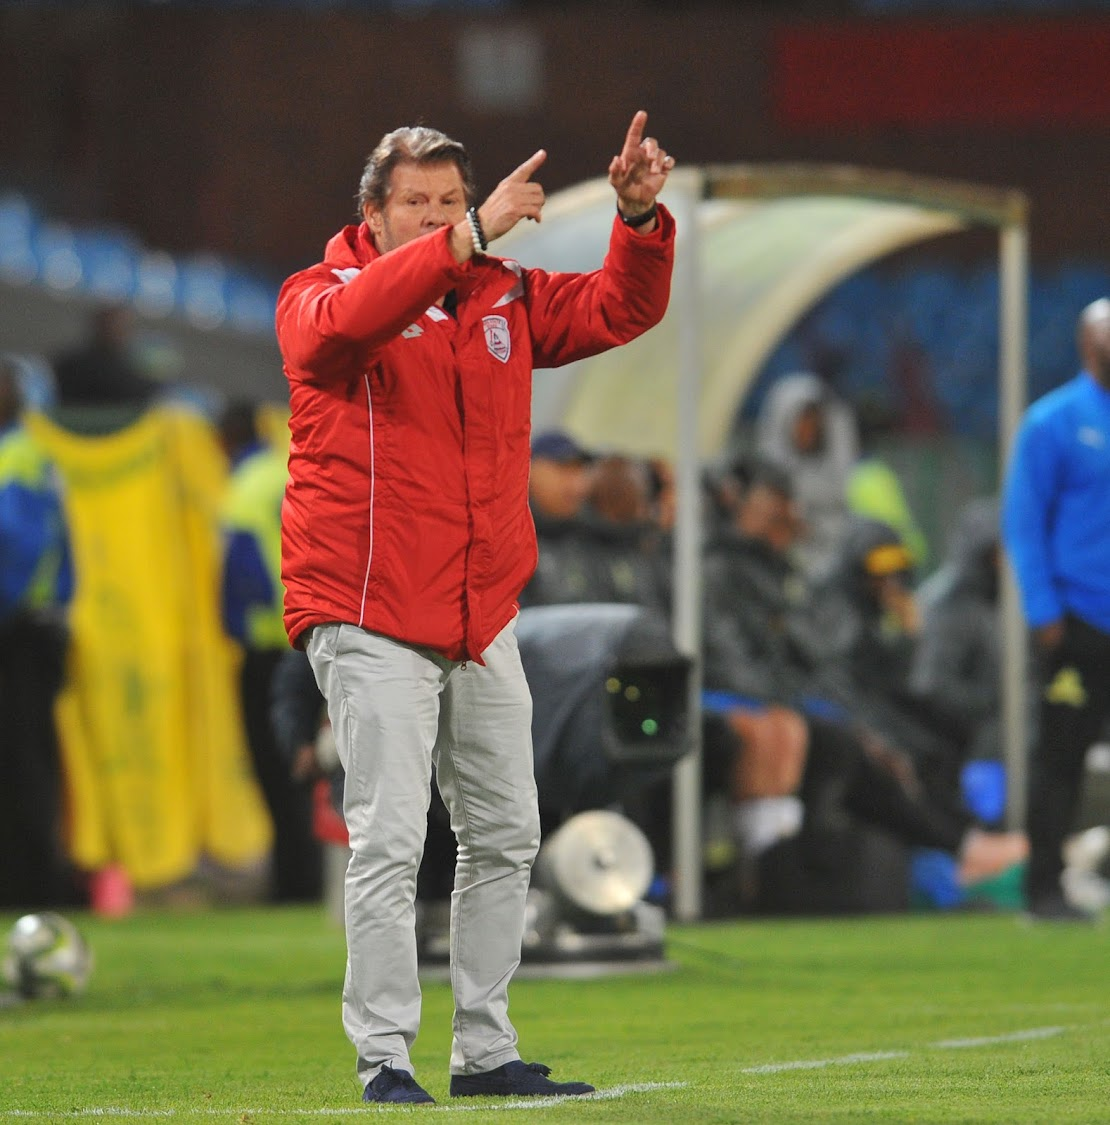 Free State Stars head coach Luc Eymael found himself caught on the wrong side of the law.